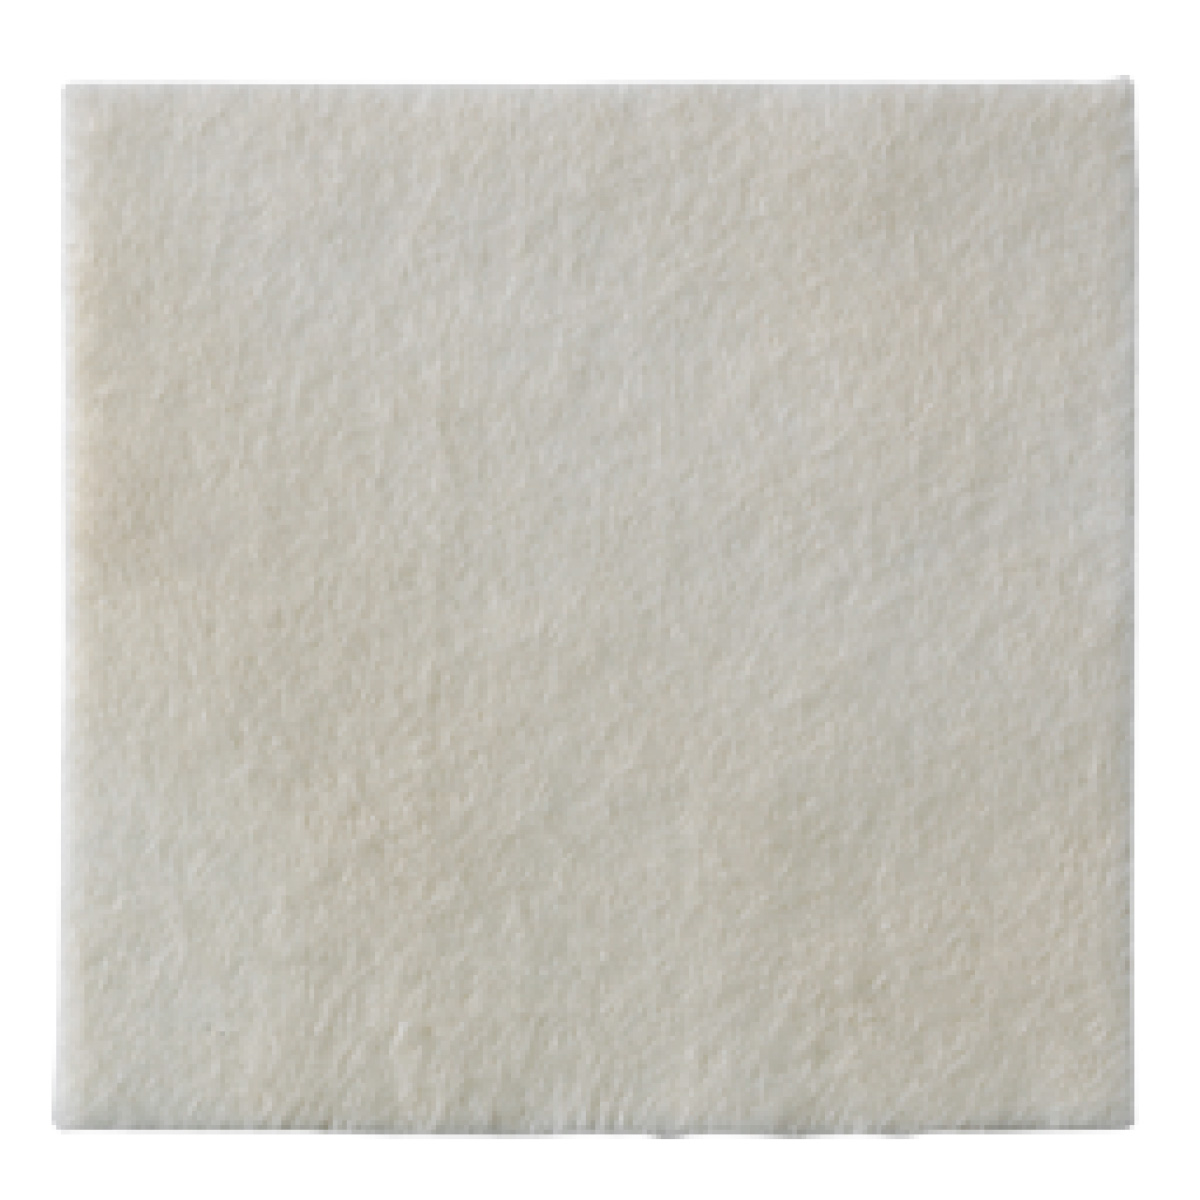 BIATAIN ALGINATO (SEASORB) 10 X 10 3710 - (Coloplast)